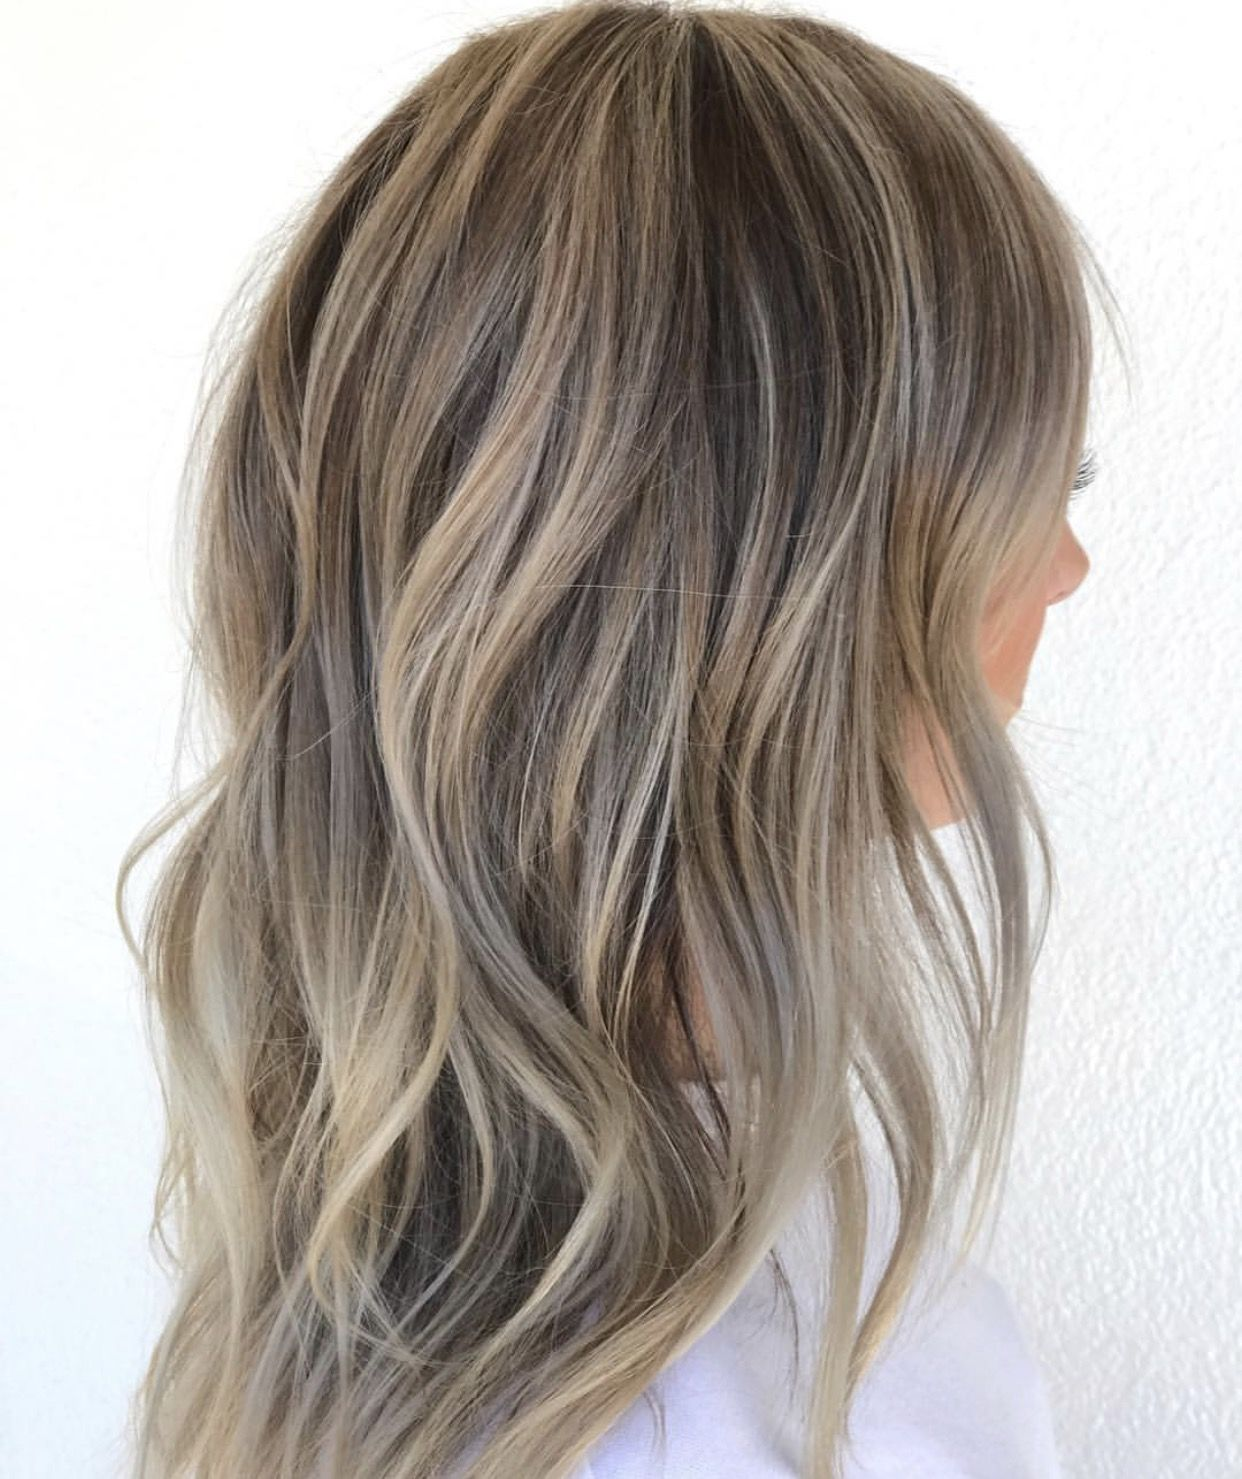 Vanilla Ice Blonde Hair All Over Blonde Balyage With Ashy Toner